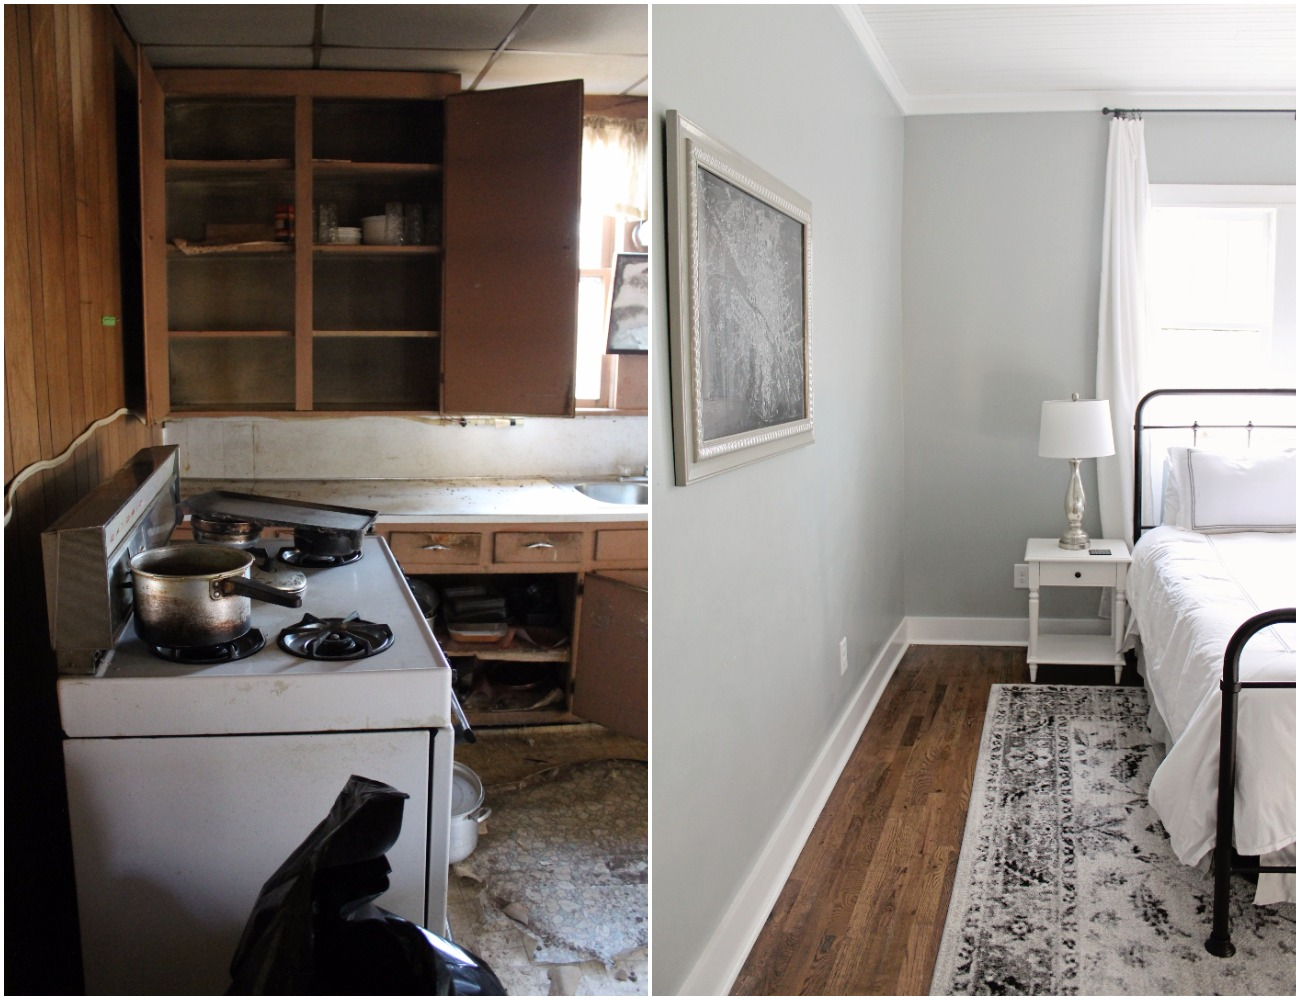 Elizabeth Burns Design  Budget-Friendly Fixer Upper Farmhouse Before and After House Flip - DIY Master Bedroom with Faux Fireplace, Chimney, and Bed Under Windows - Sherwin Williams Magnetic Gray (7).jpg